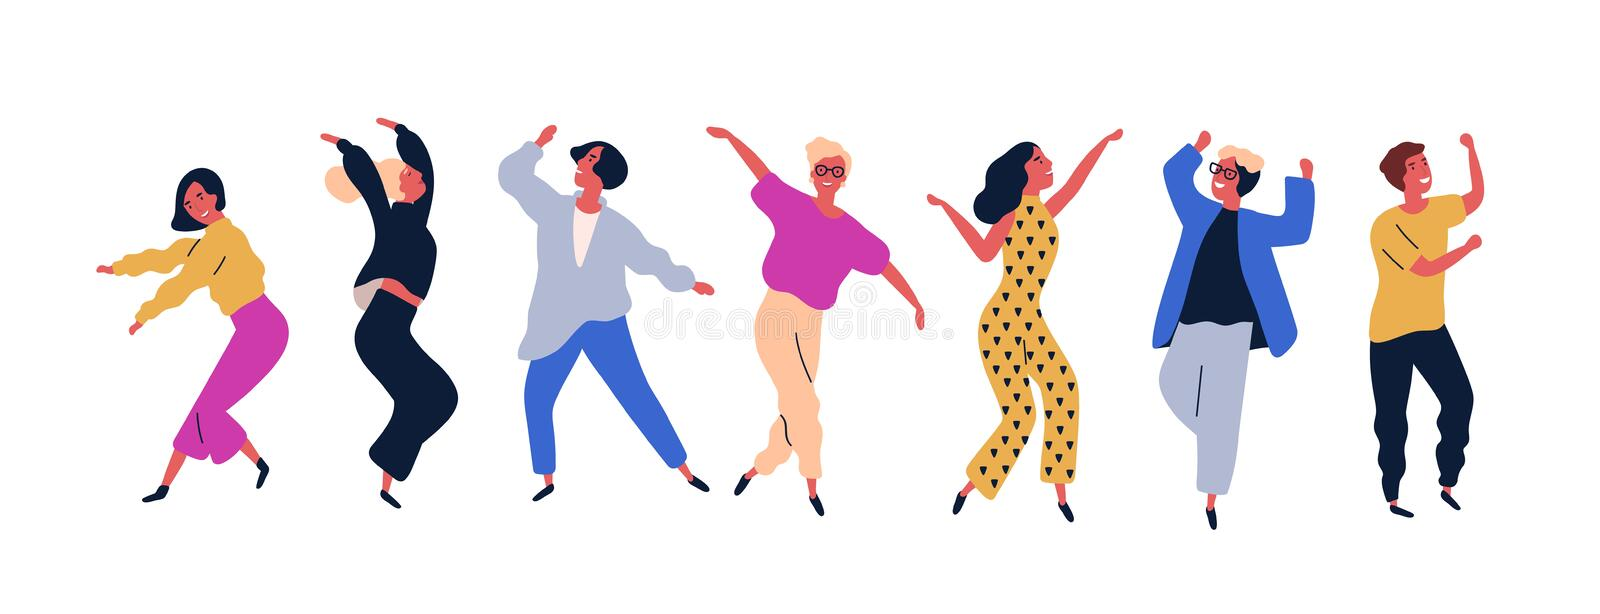 Group of young happy dancing people or male and female dancers isolated on white background. Smiling young men and women. Enjoying dance party. Colorful vector stock illustration